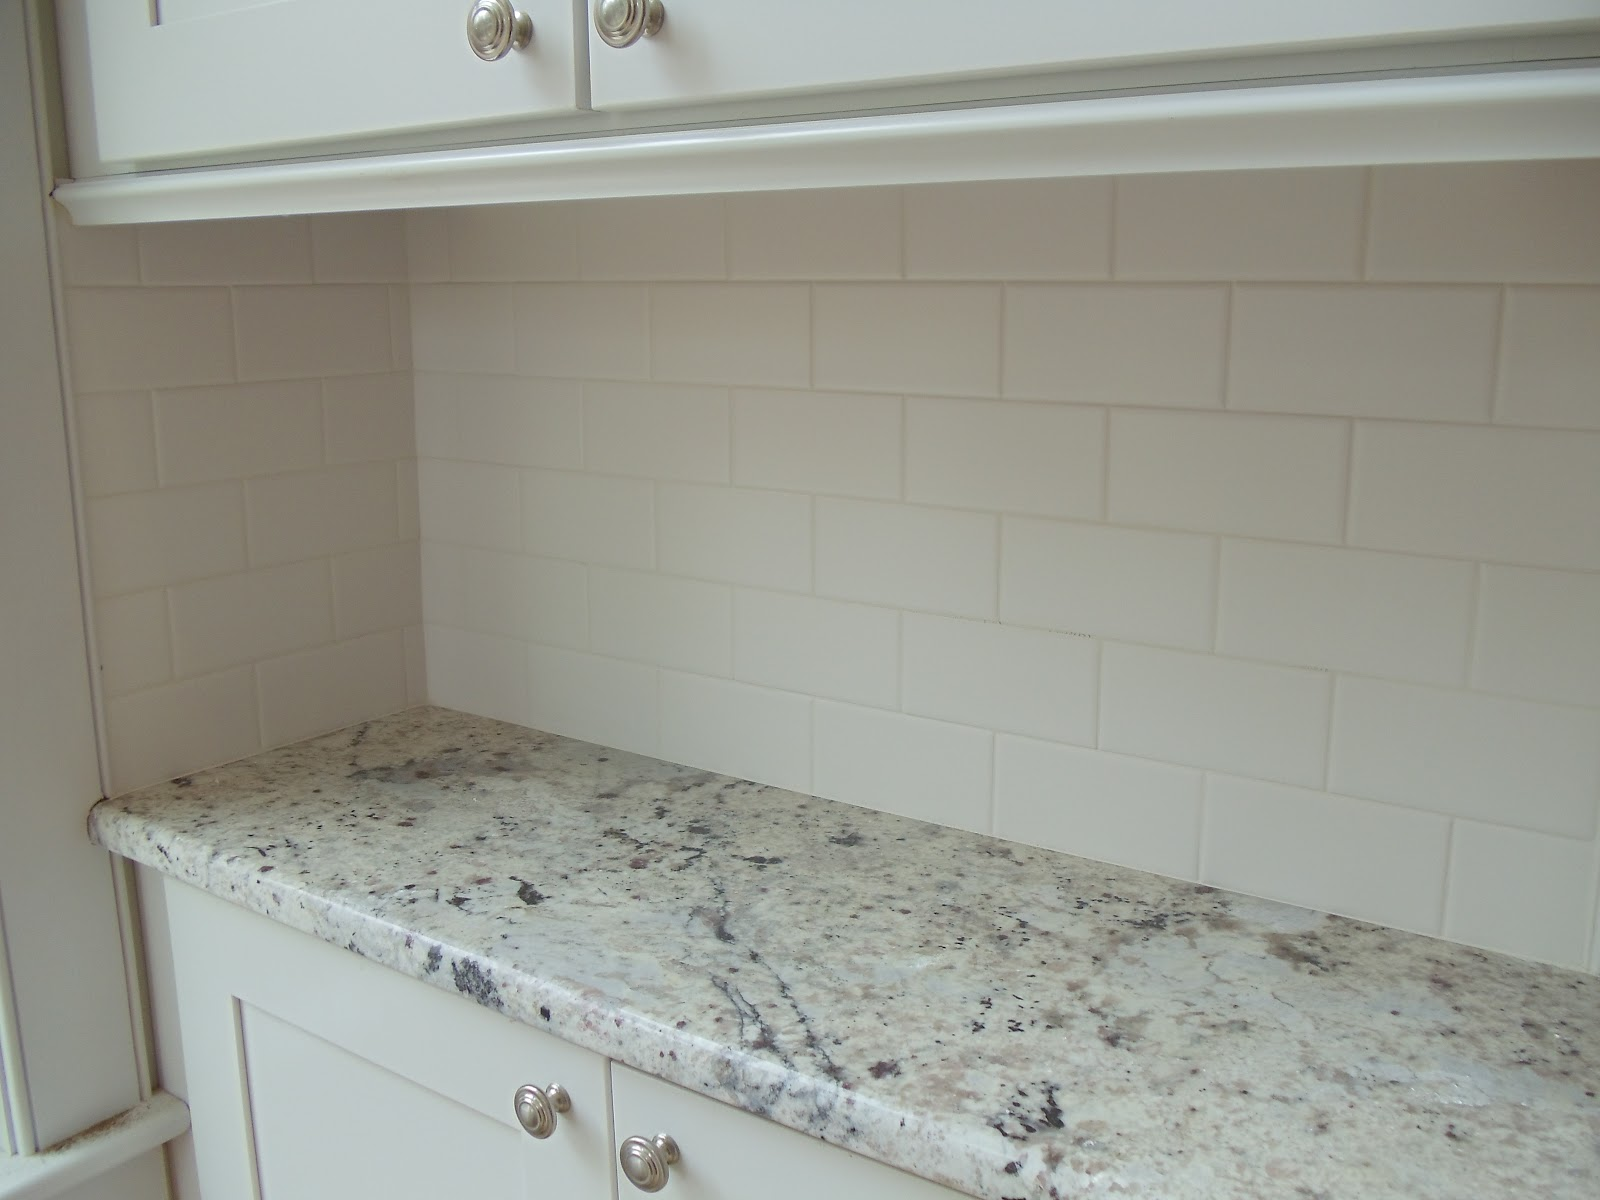 Image Result For What Is The Best Way To Clean Tile Grout